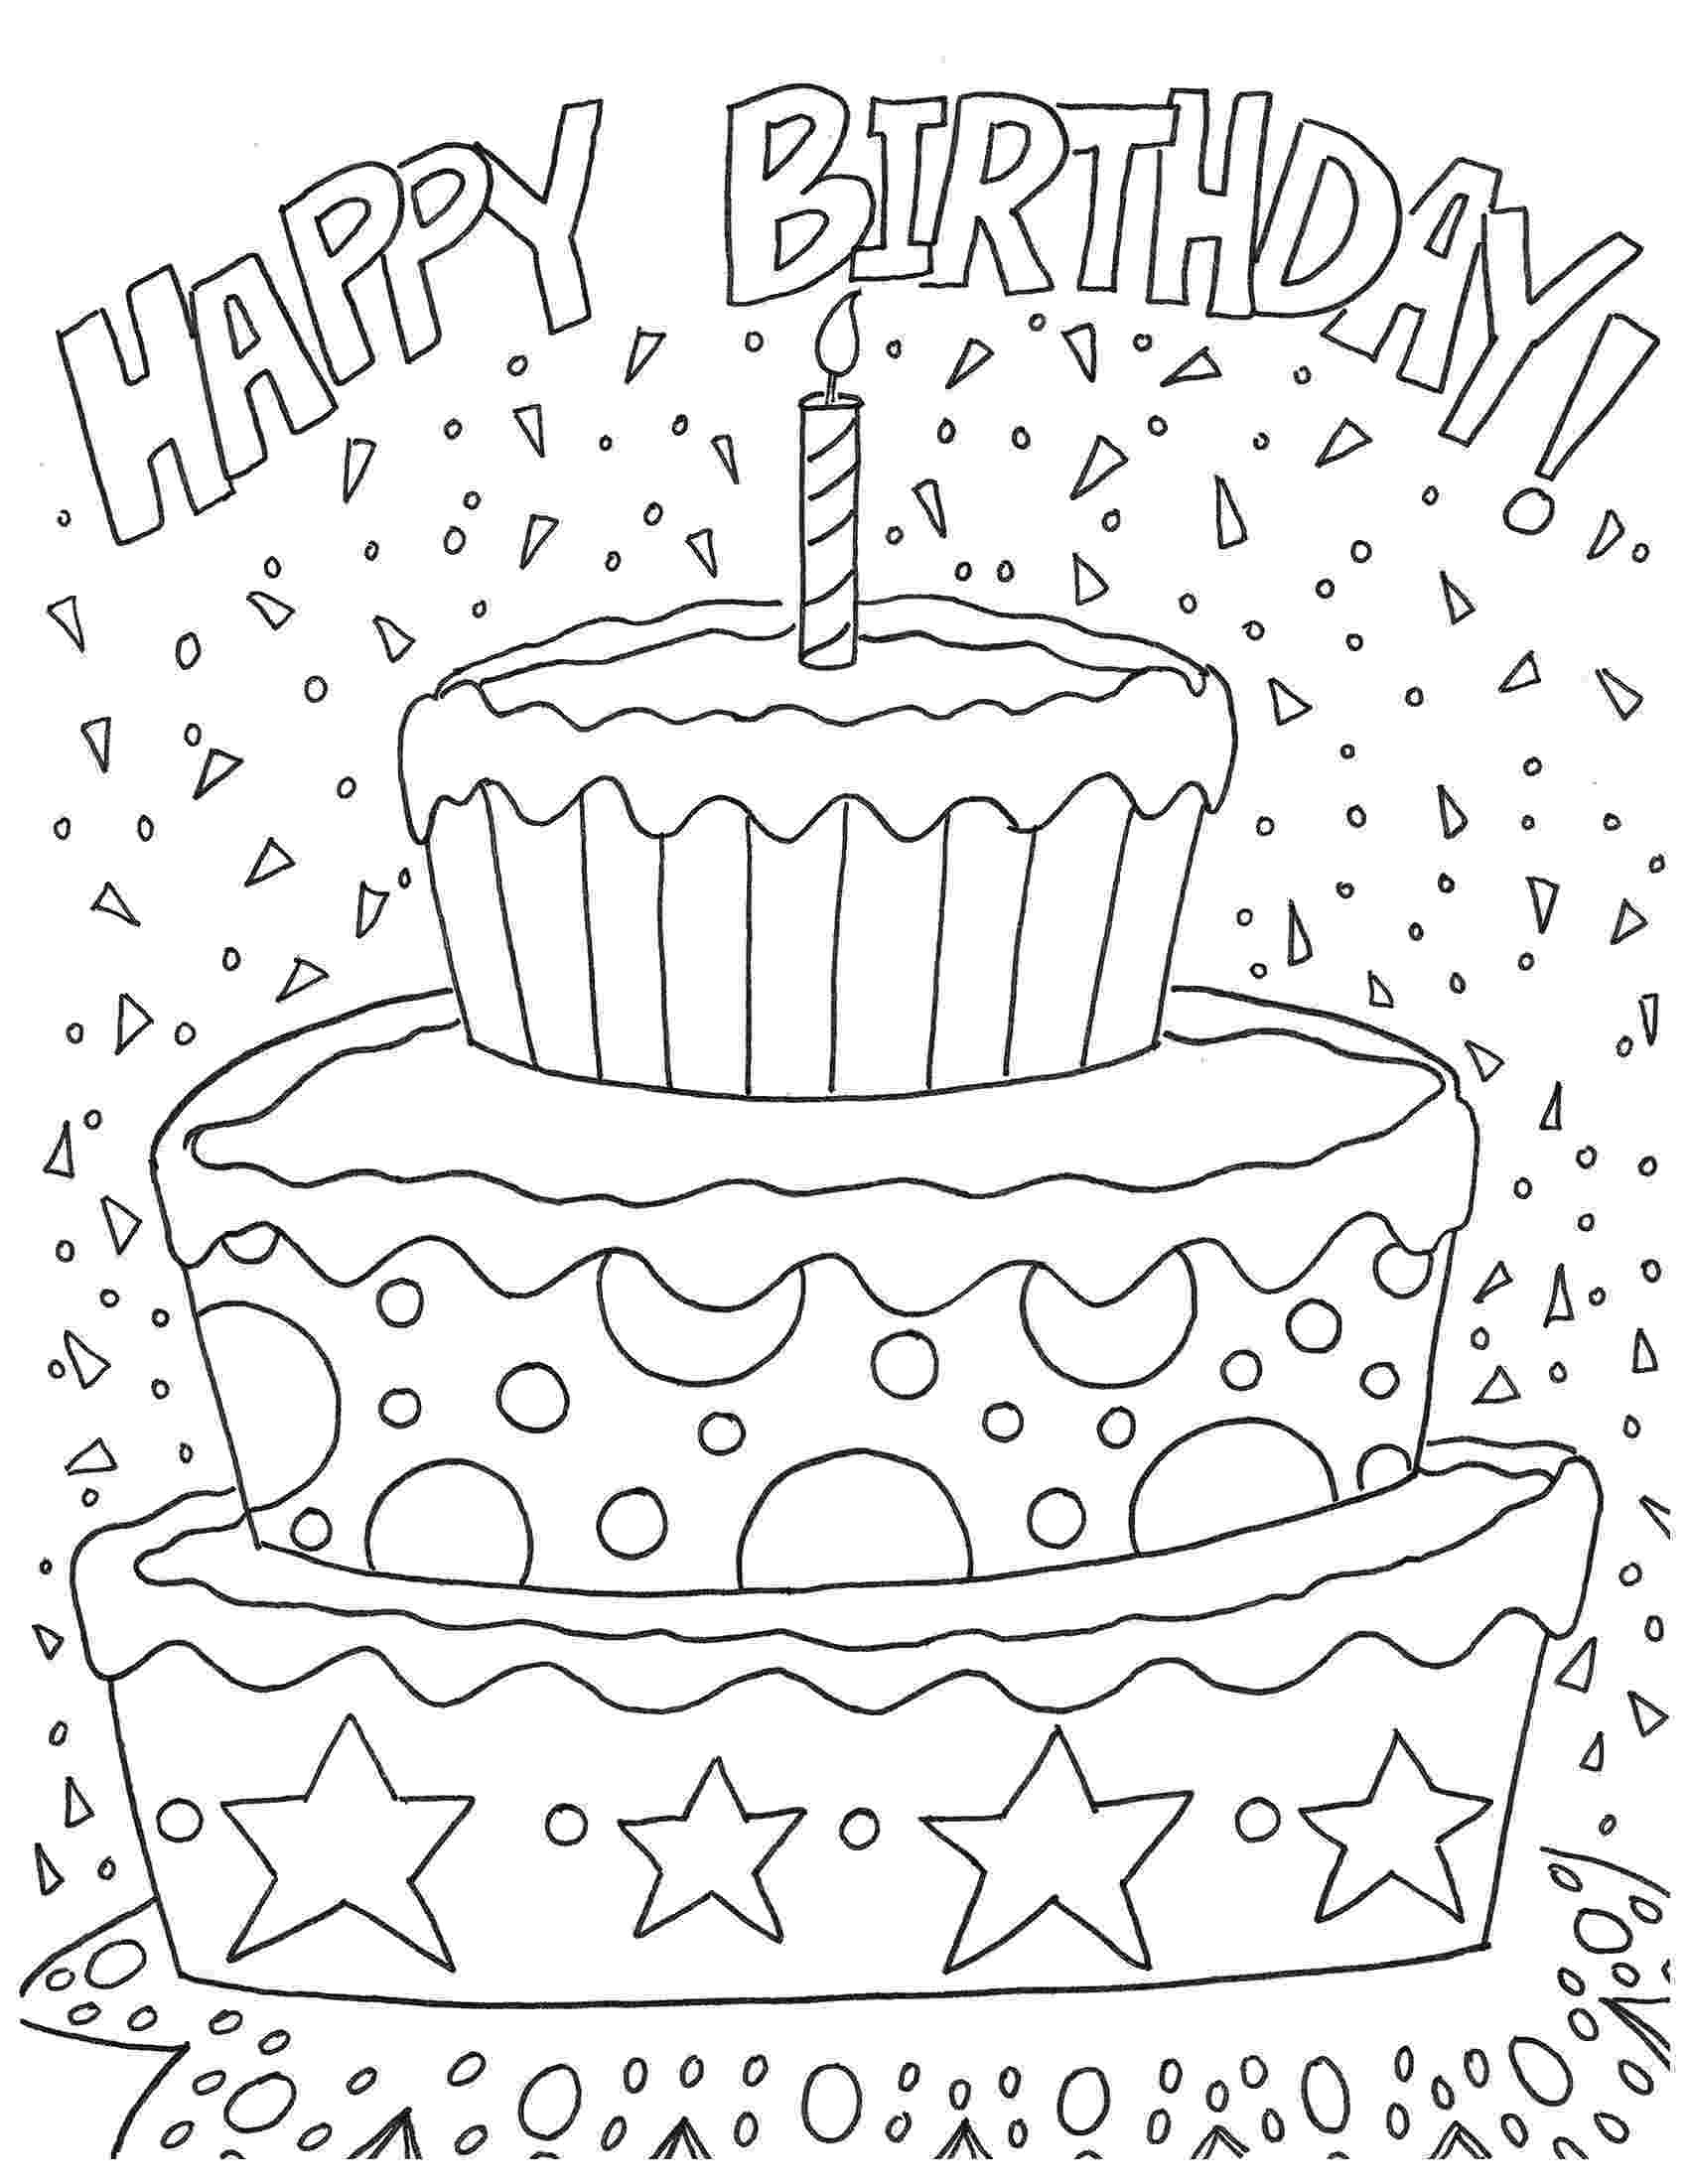 printable colouring birthday pictures birthday cake coloring pages to download and print for free colouring pictures printable birthday